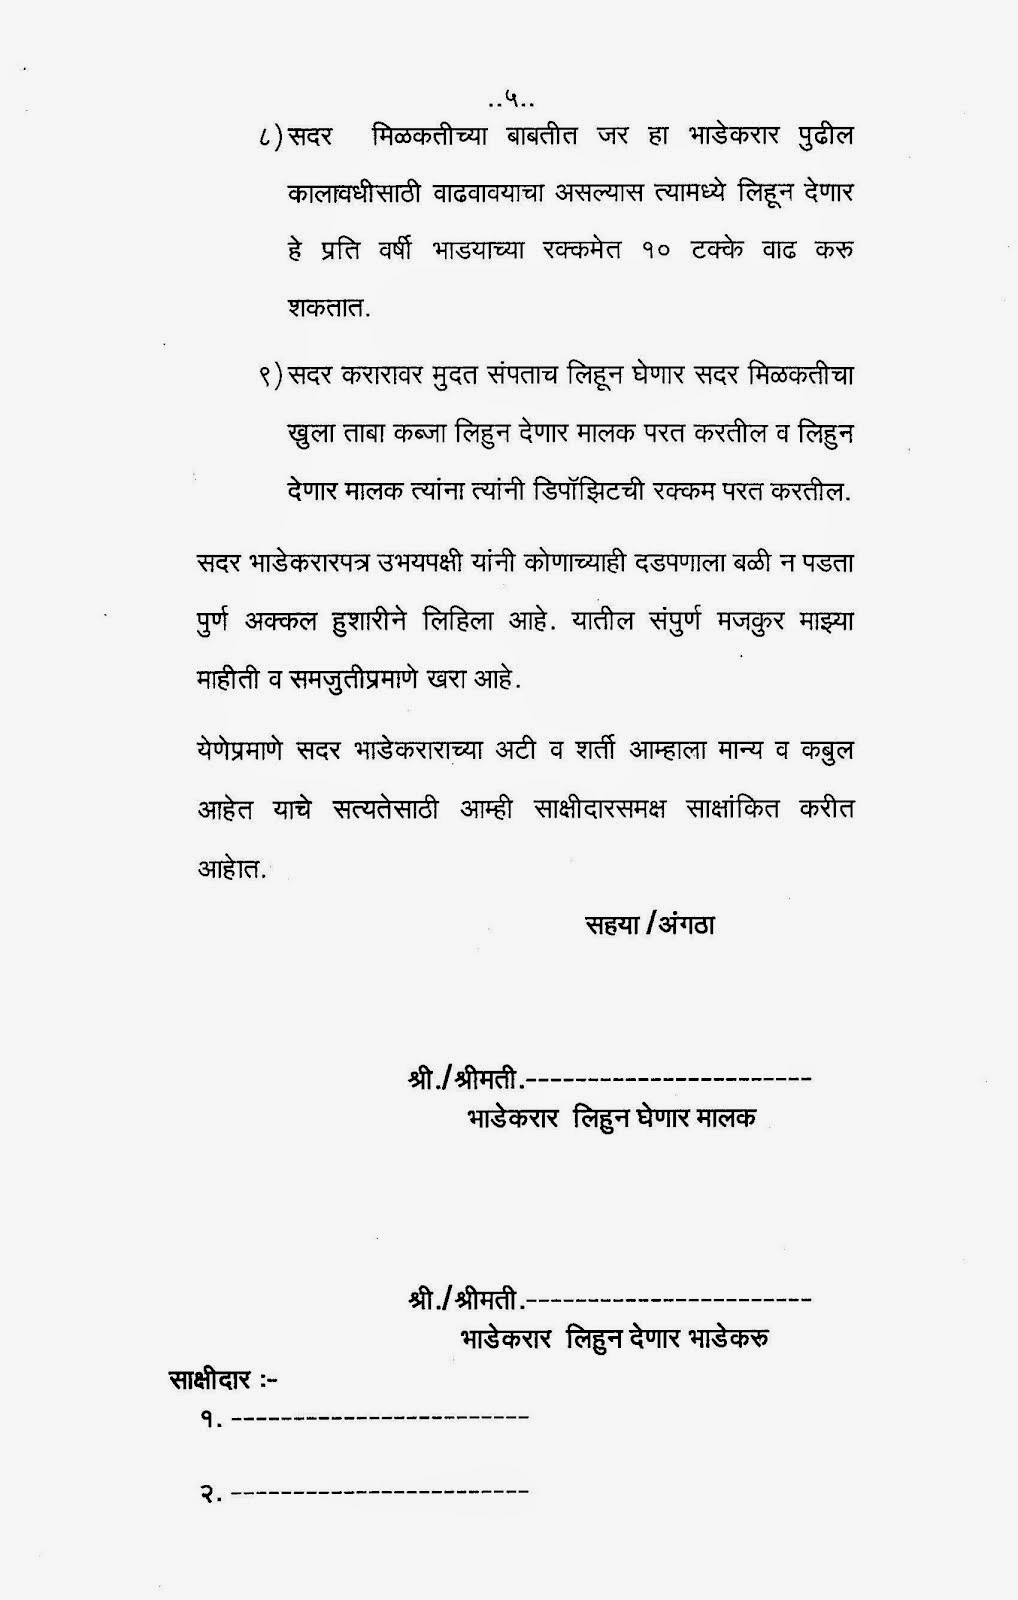 Rent Agreement Format In Marathi